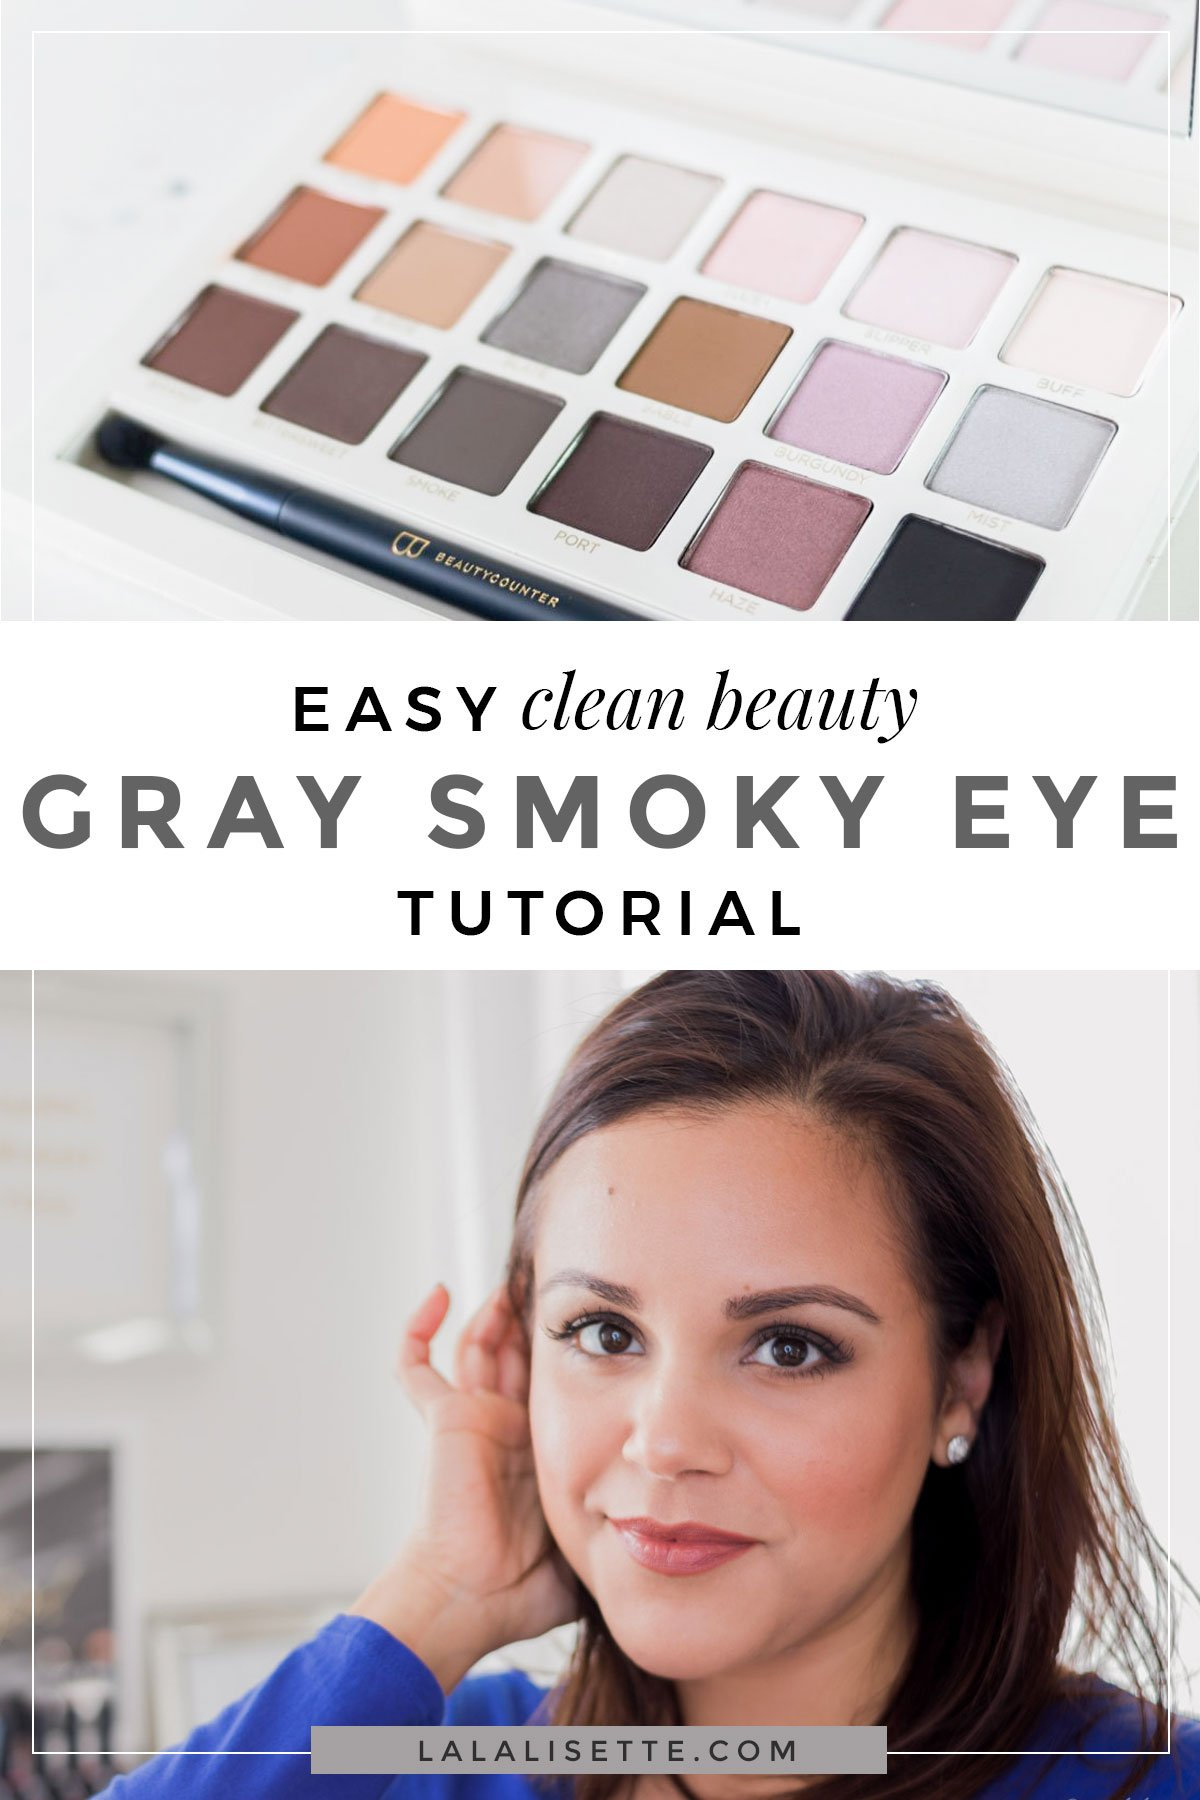 An easy gray smoky eye makeup tutorial using clean beauty products by Beautycounter and other clean brands.  A great everyday smoky eye look. #cleanbeauty #smokyeye #smokyeyetutorial #smokyeyemakeup #greenbeauty #nontoxicbeauty #cleanbeautyproject #cleanbeautyglam #saferbeauty #betterbeauty